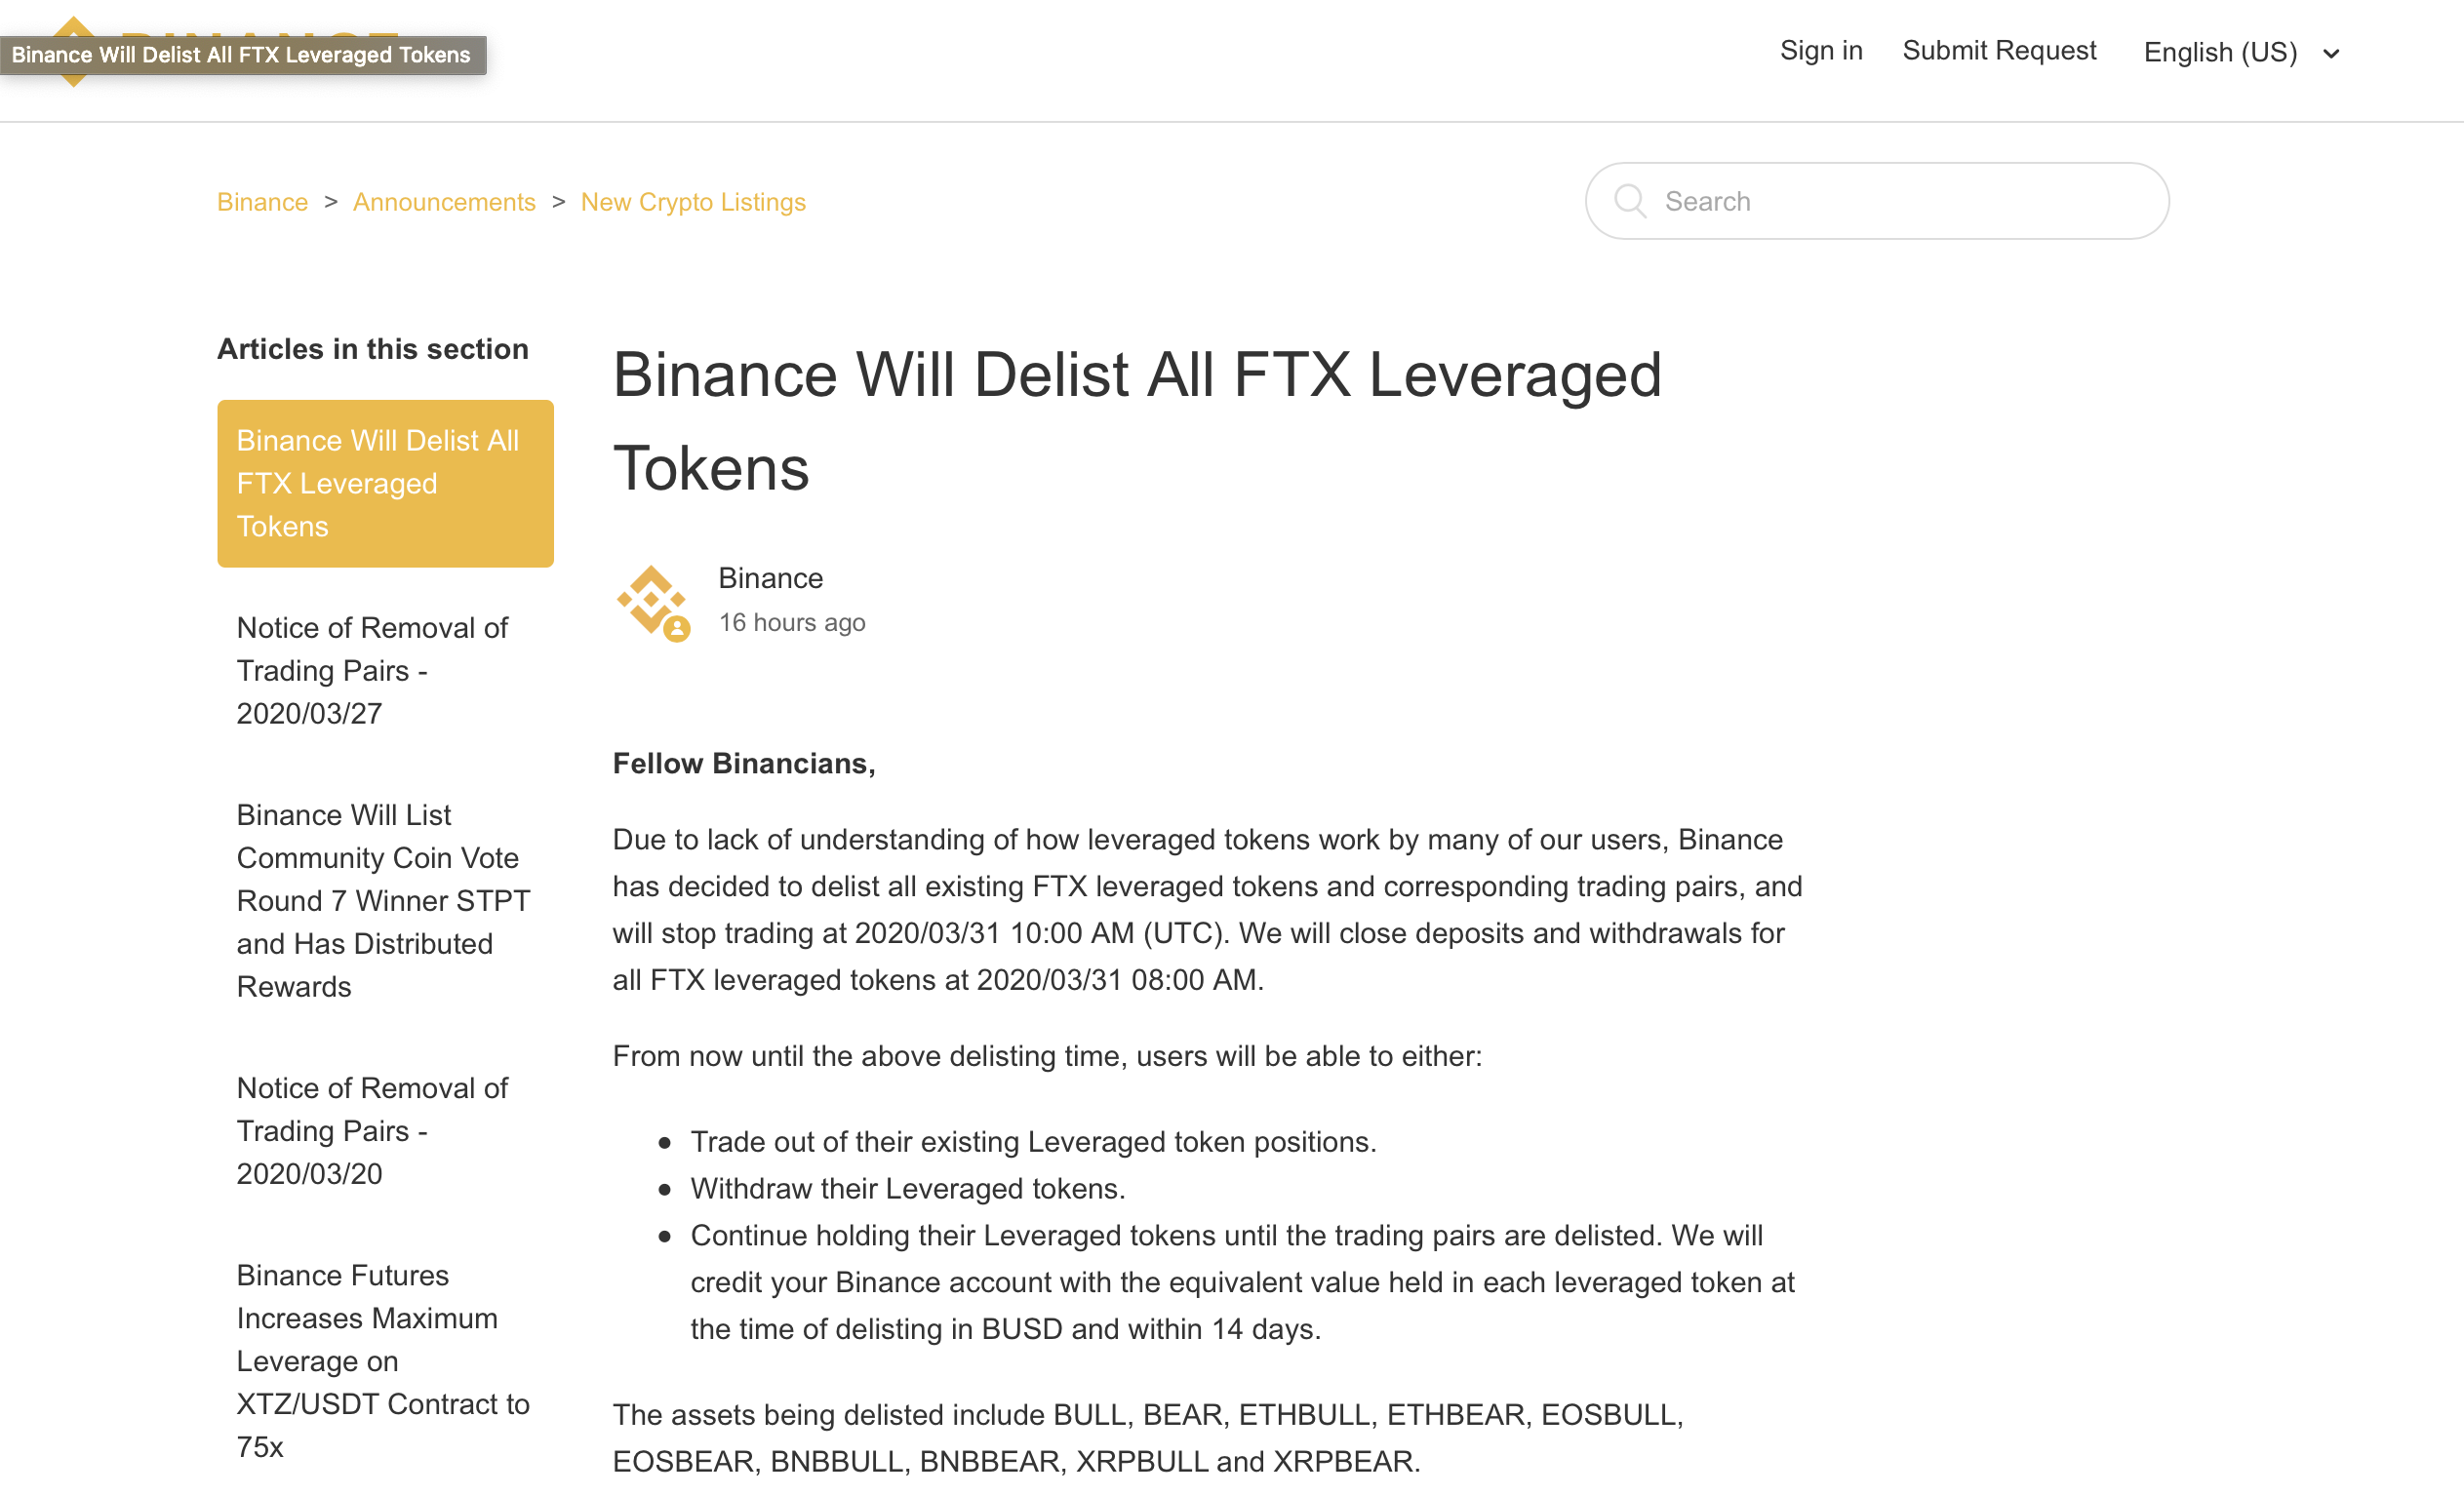 Binance Will Delist All FTX Leveraged Tokens